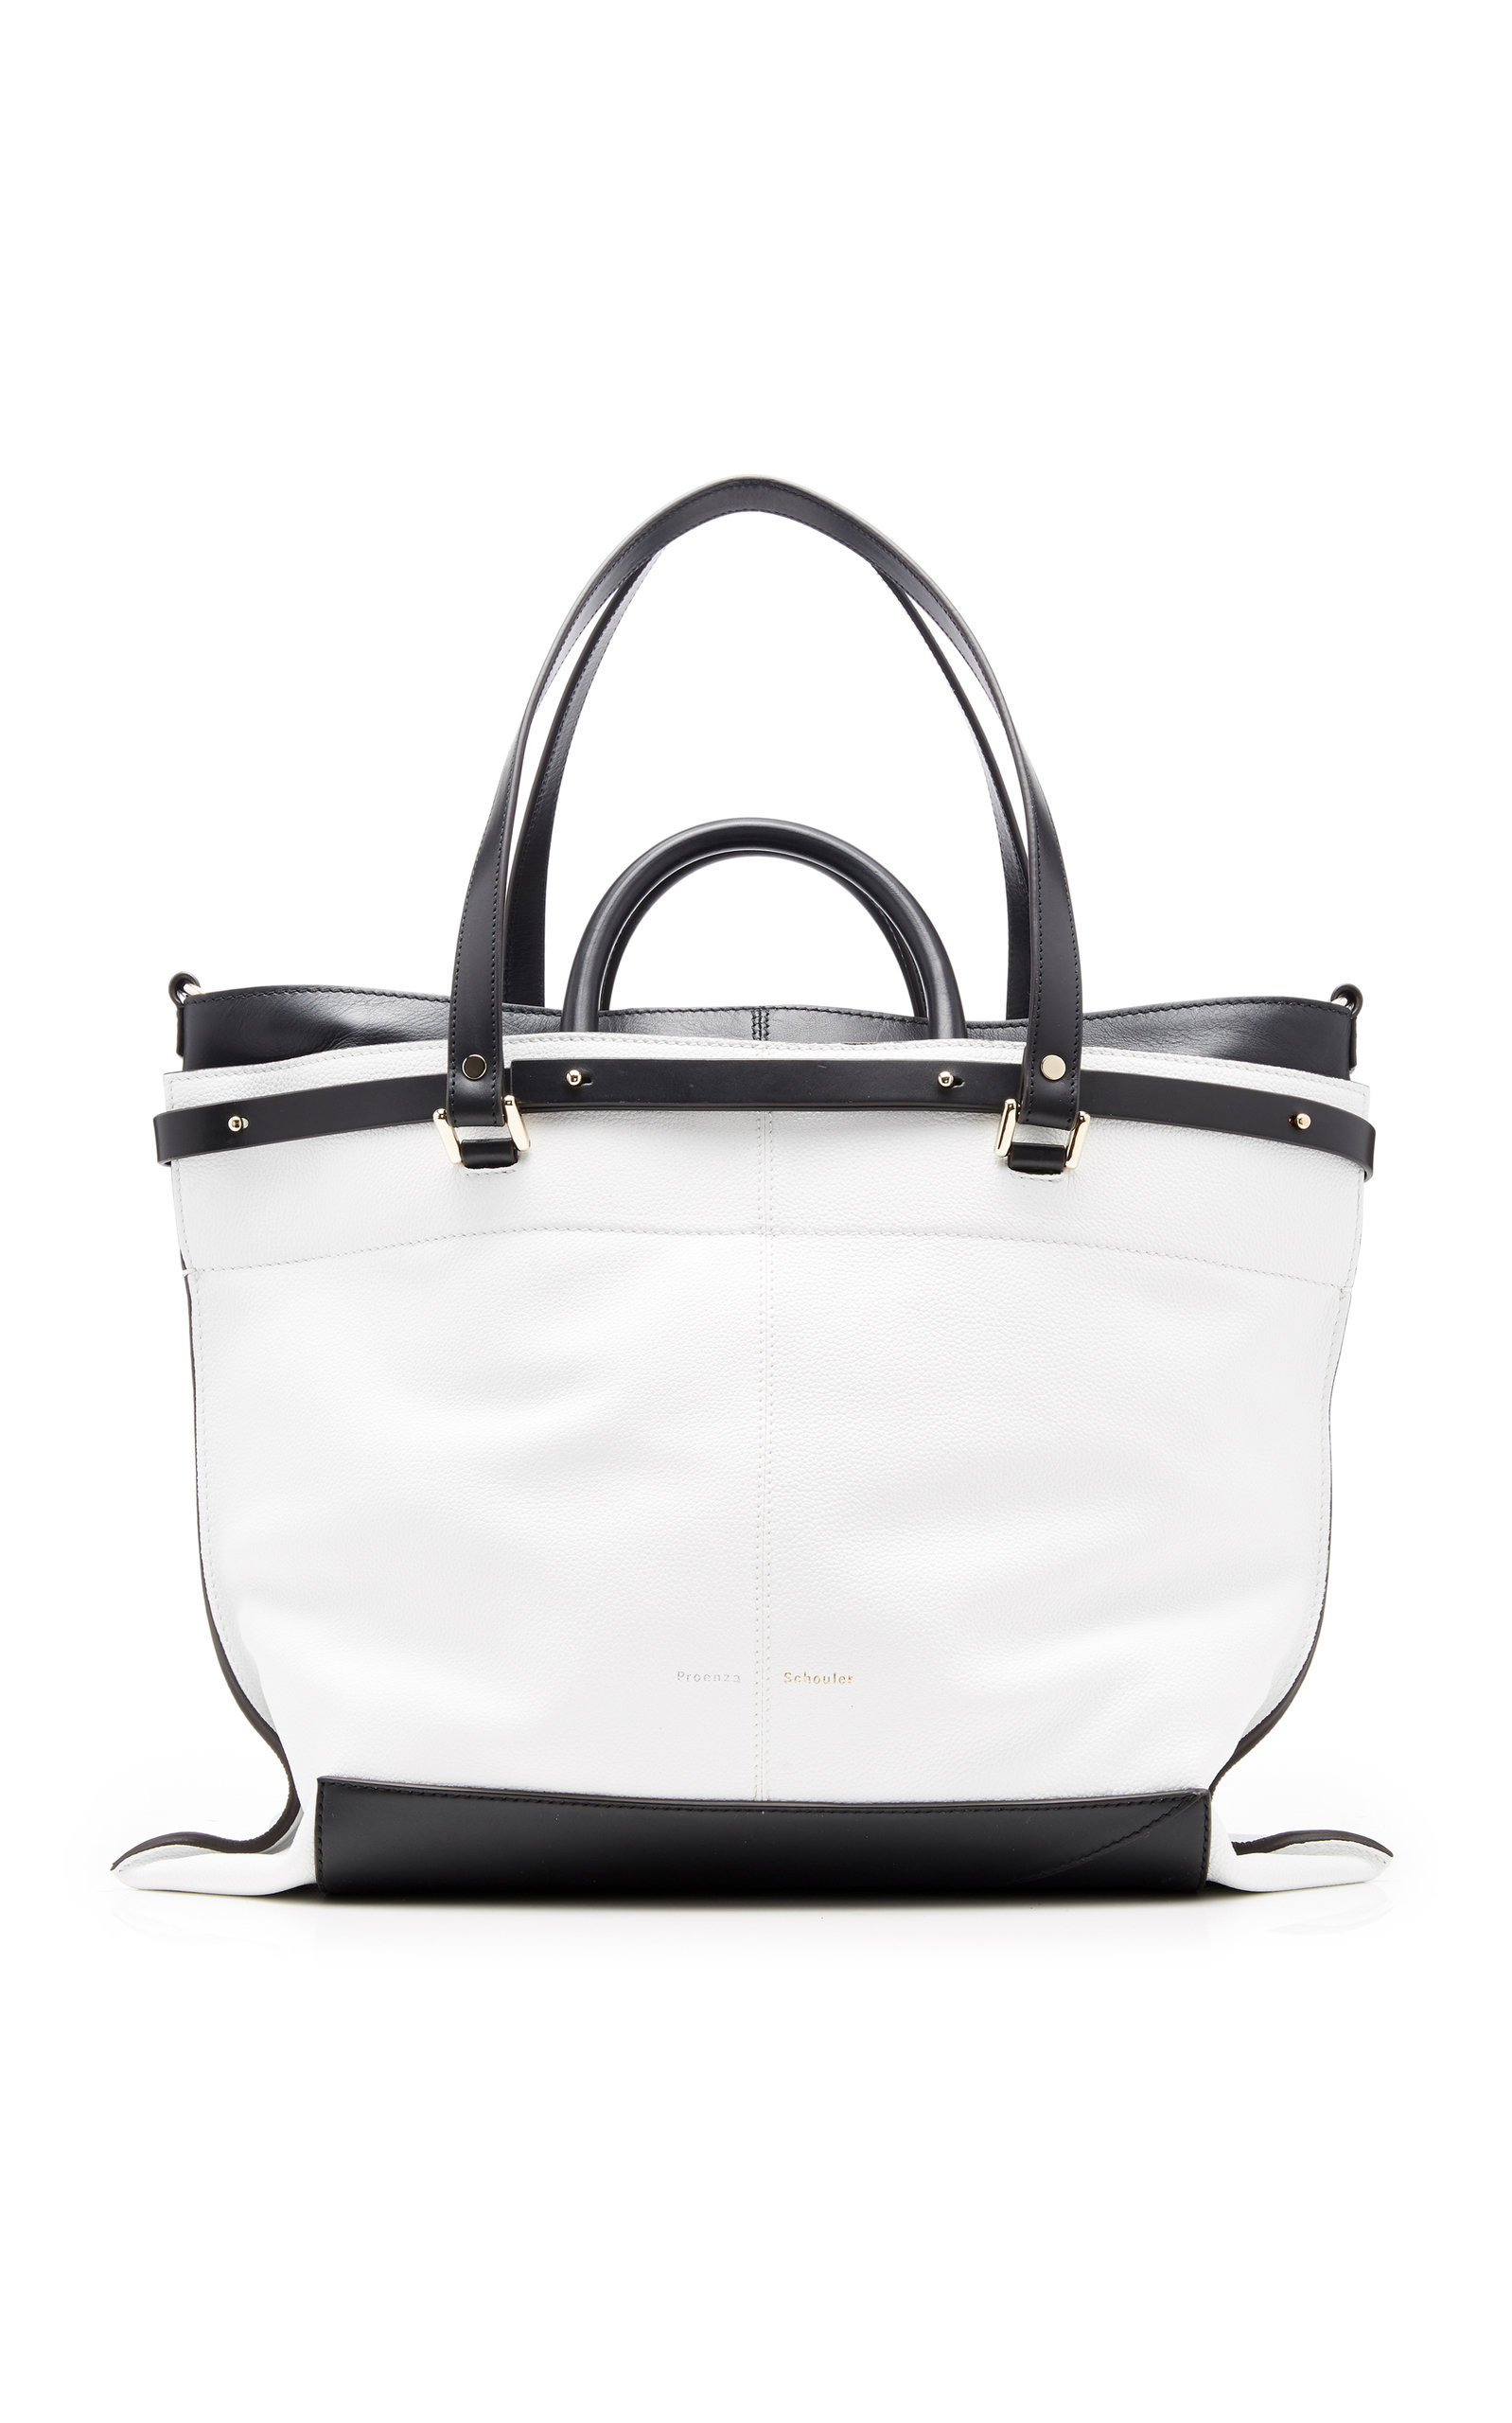 Proenza Schouler Totes PS19 Small  Leather Tote Bag